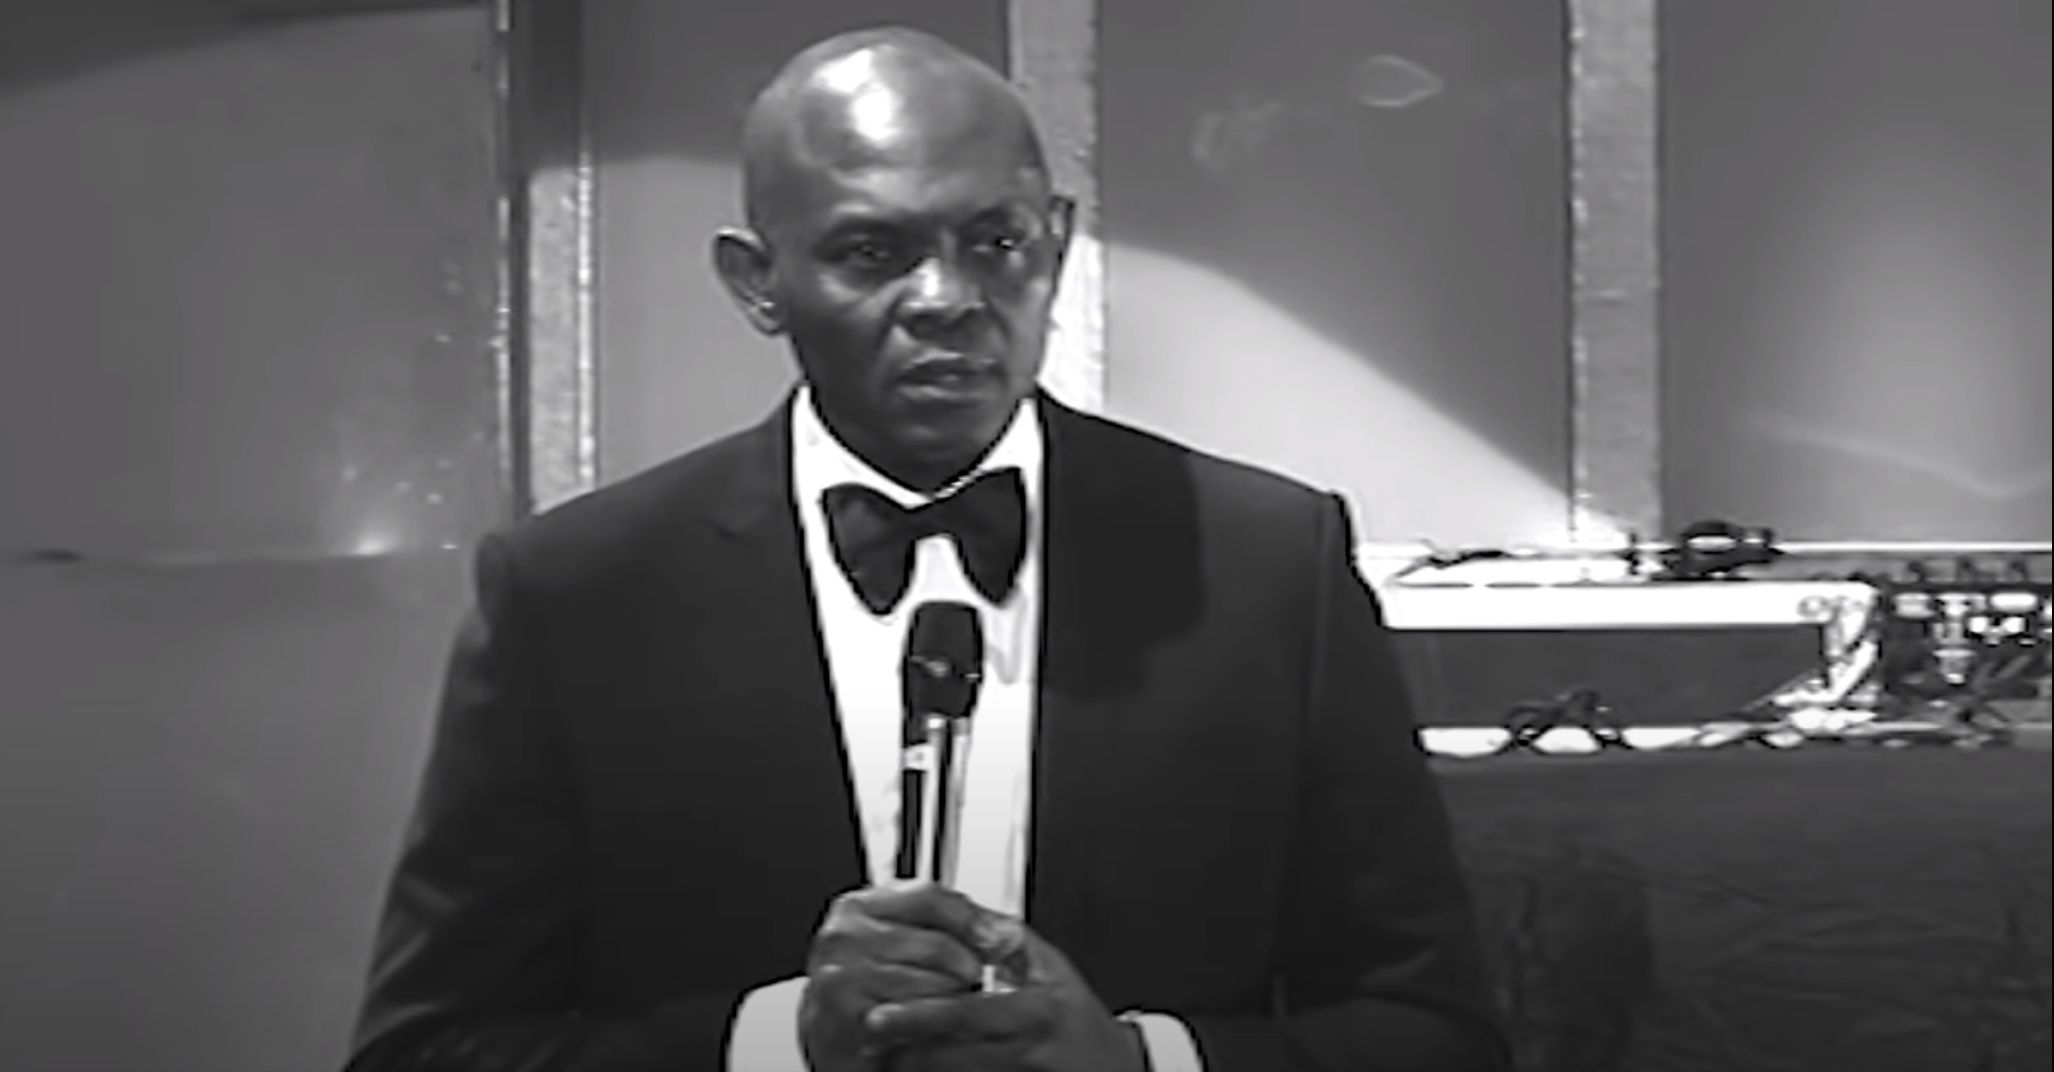 Heirs holdings Chairman, Tony Elumelu announces his retirement from UBA